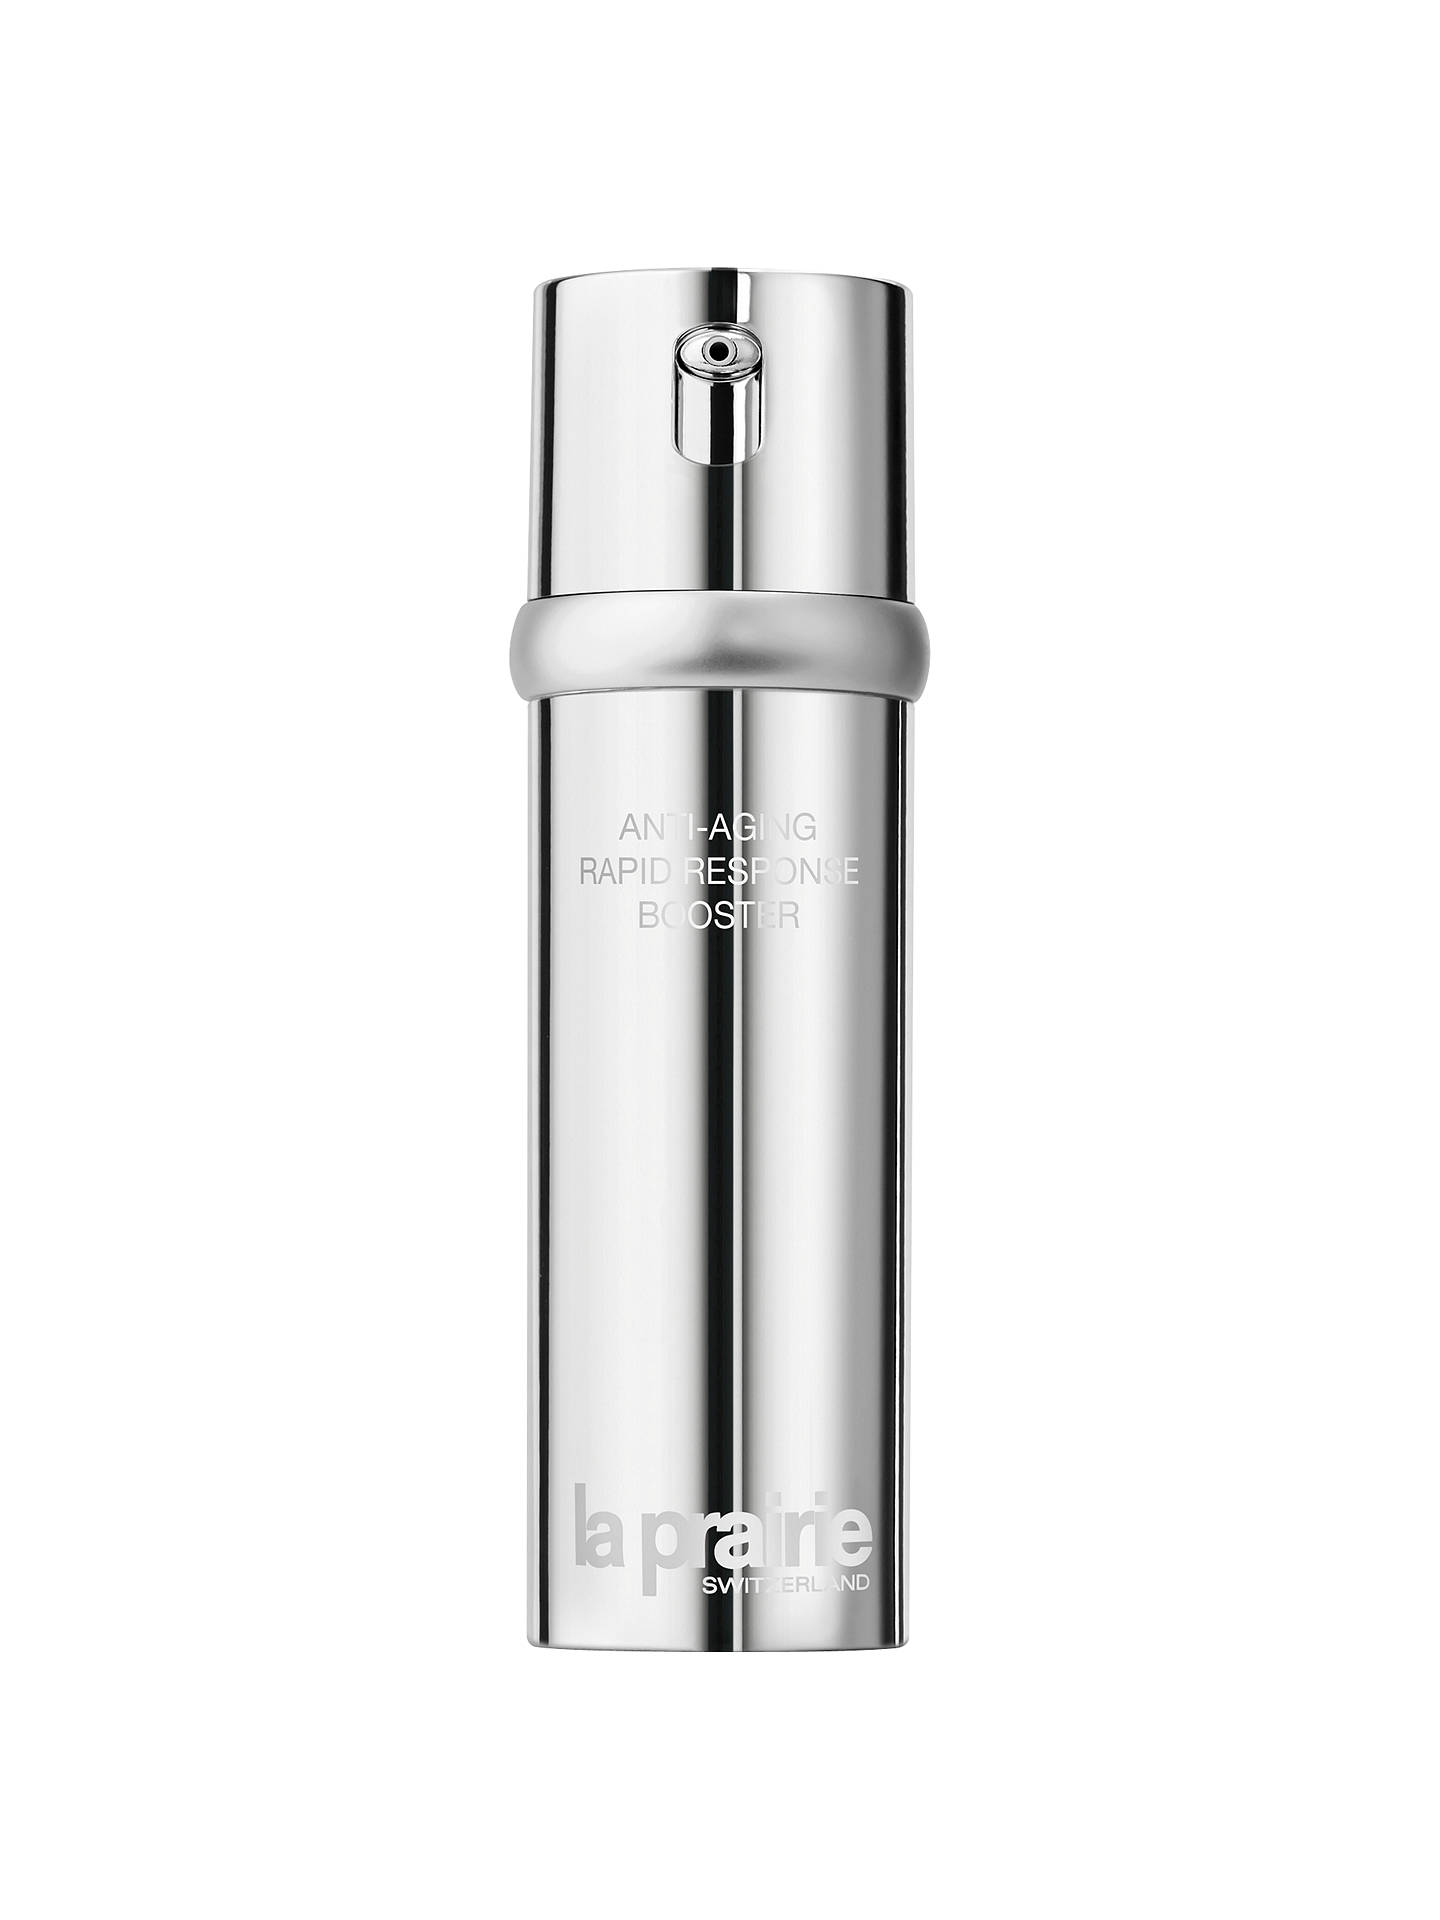 Buy La Prairie Anti-Ageing Rapid Response Booster, 50ml Online at johnlewis.com